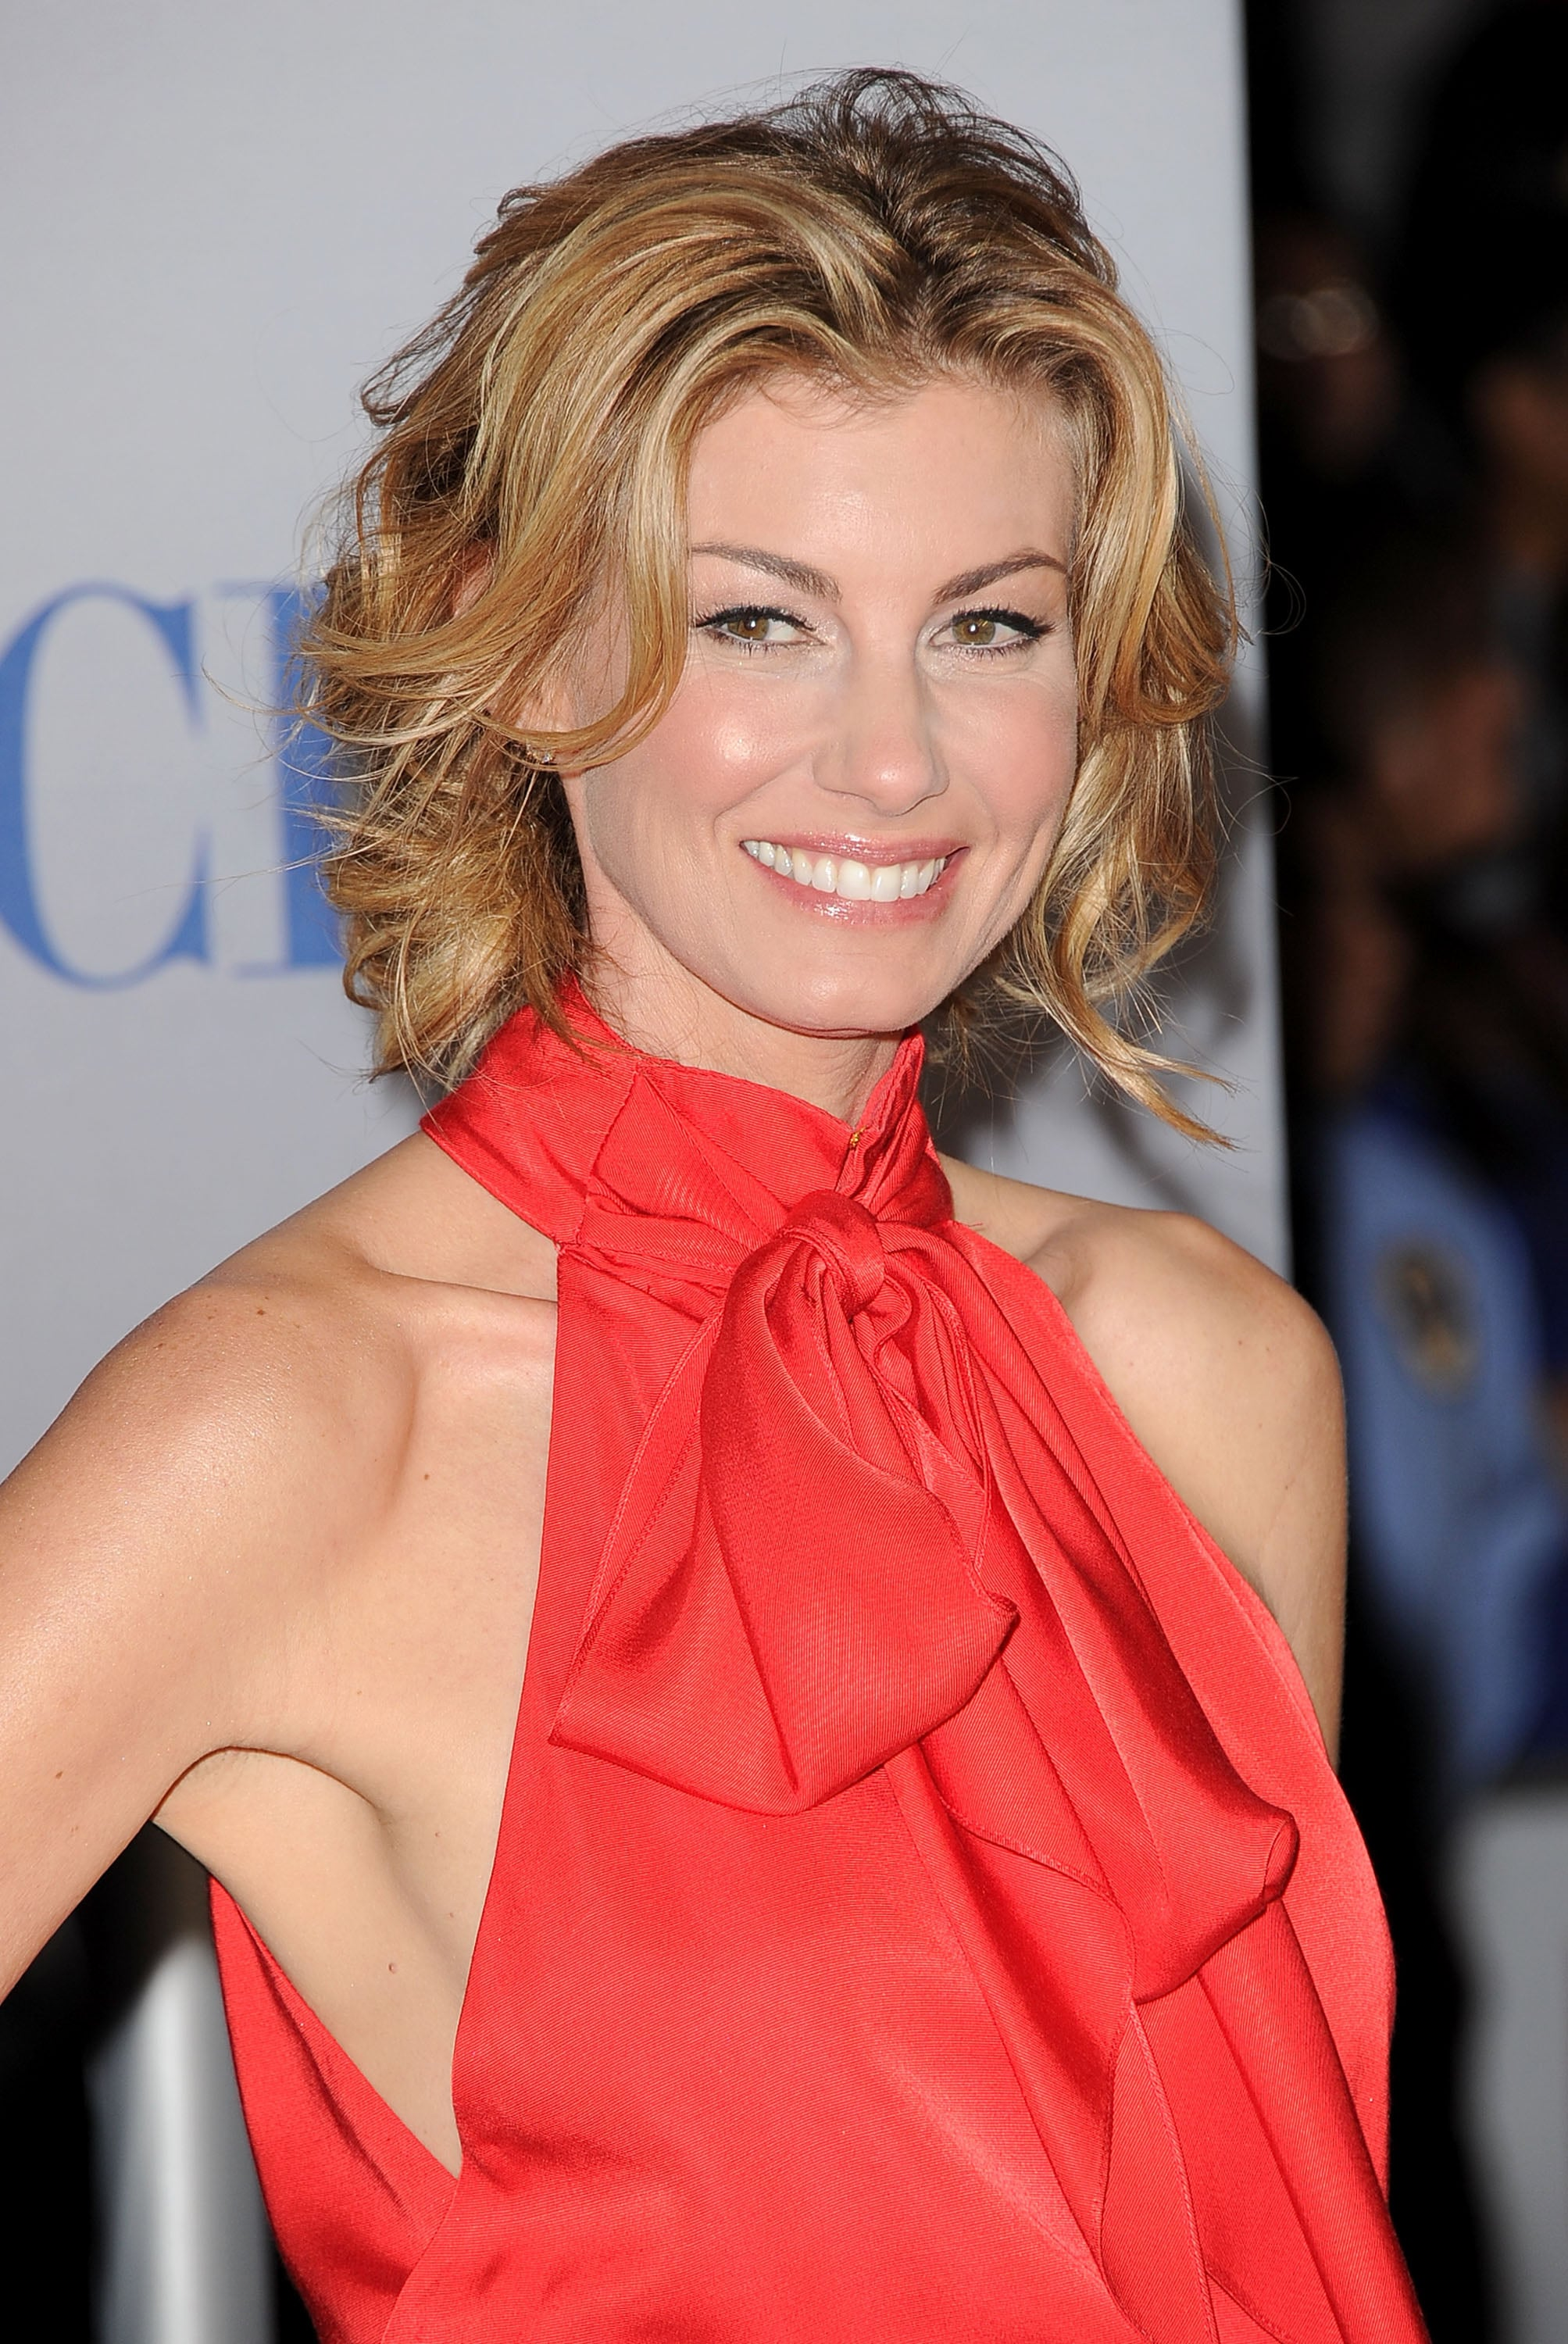 Faith Hill smiled before her People's Choice Awards performance.